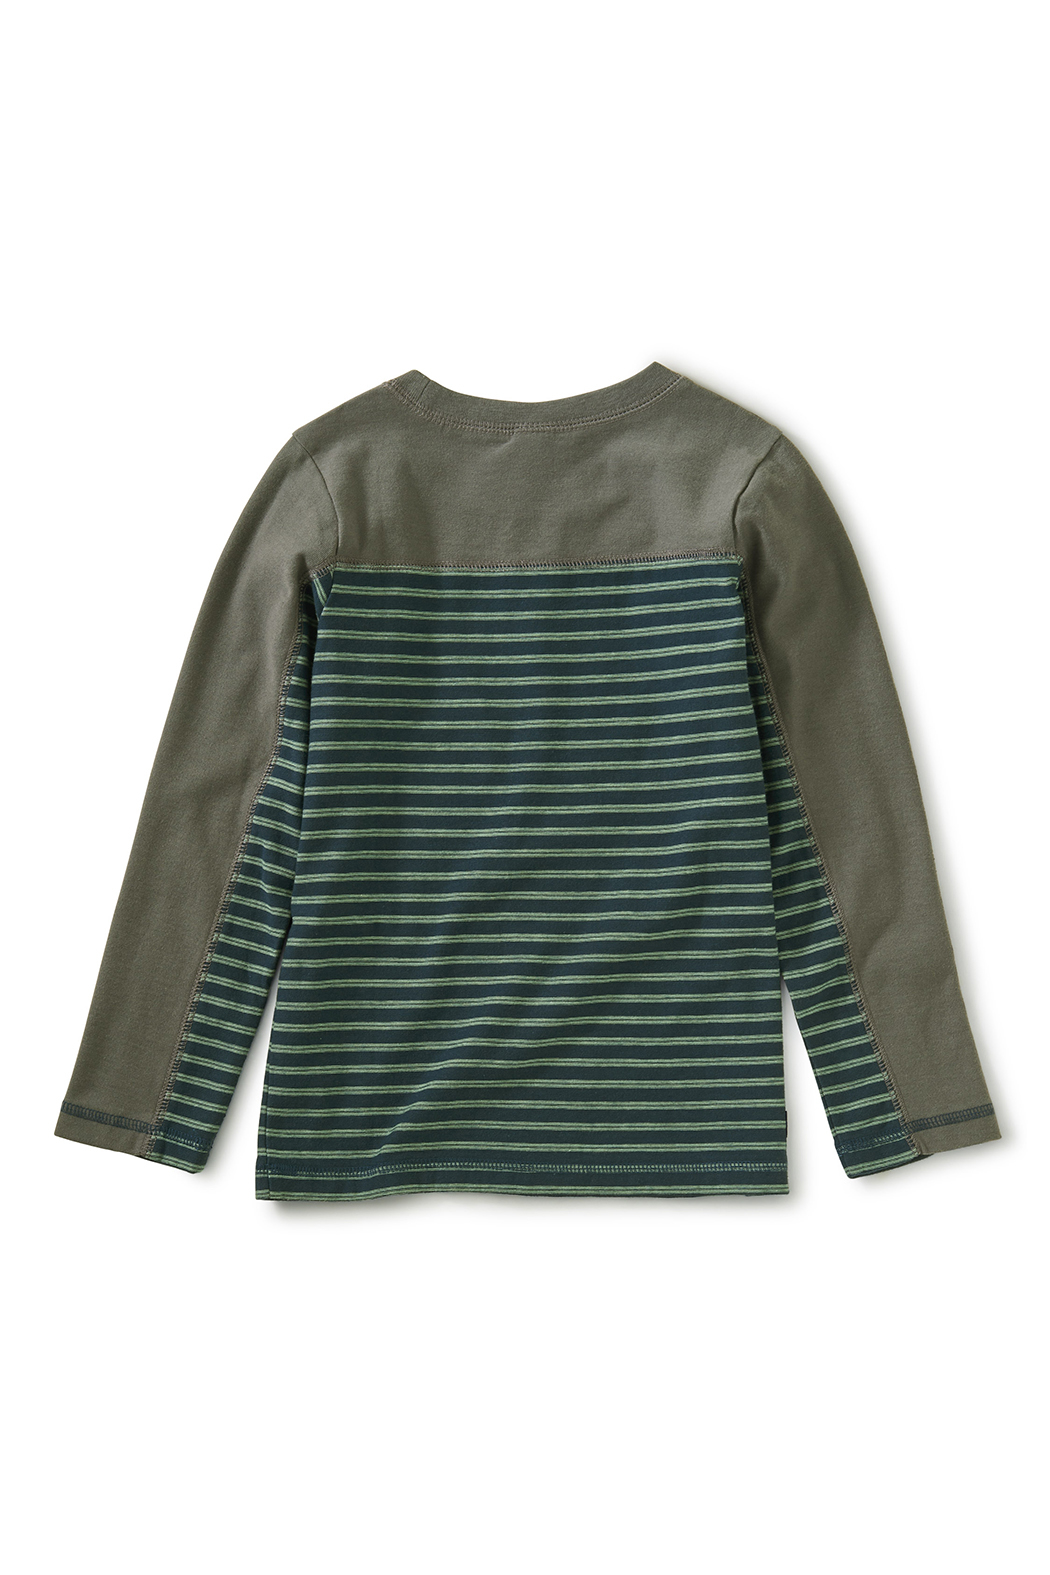 Tea Collection Striped Sporty Top - Front Full Image